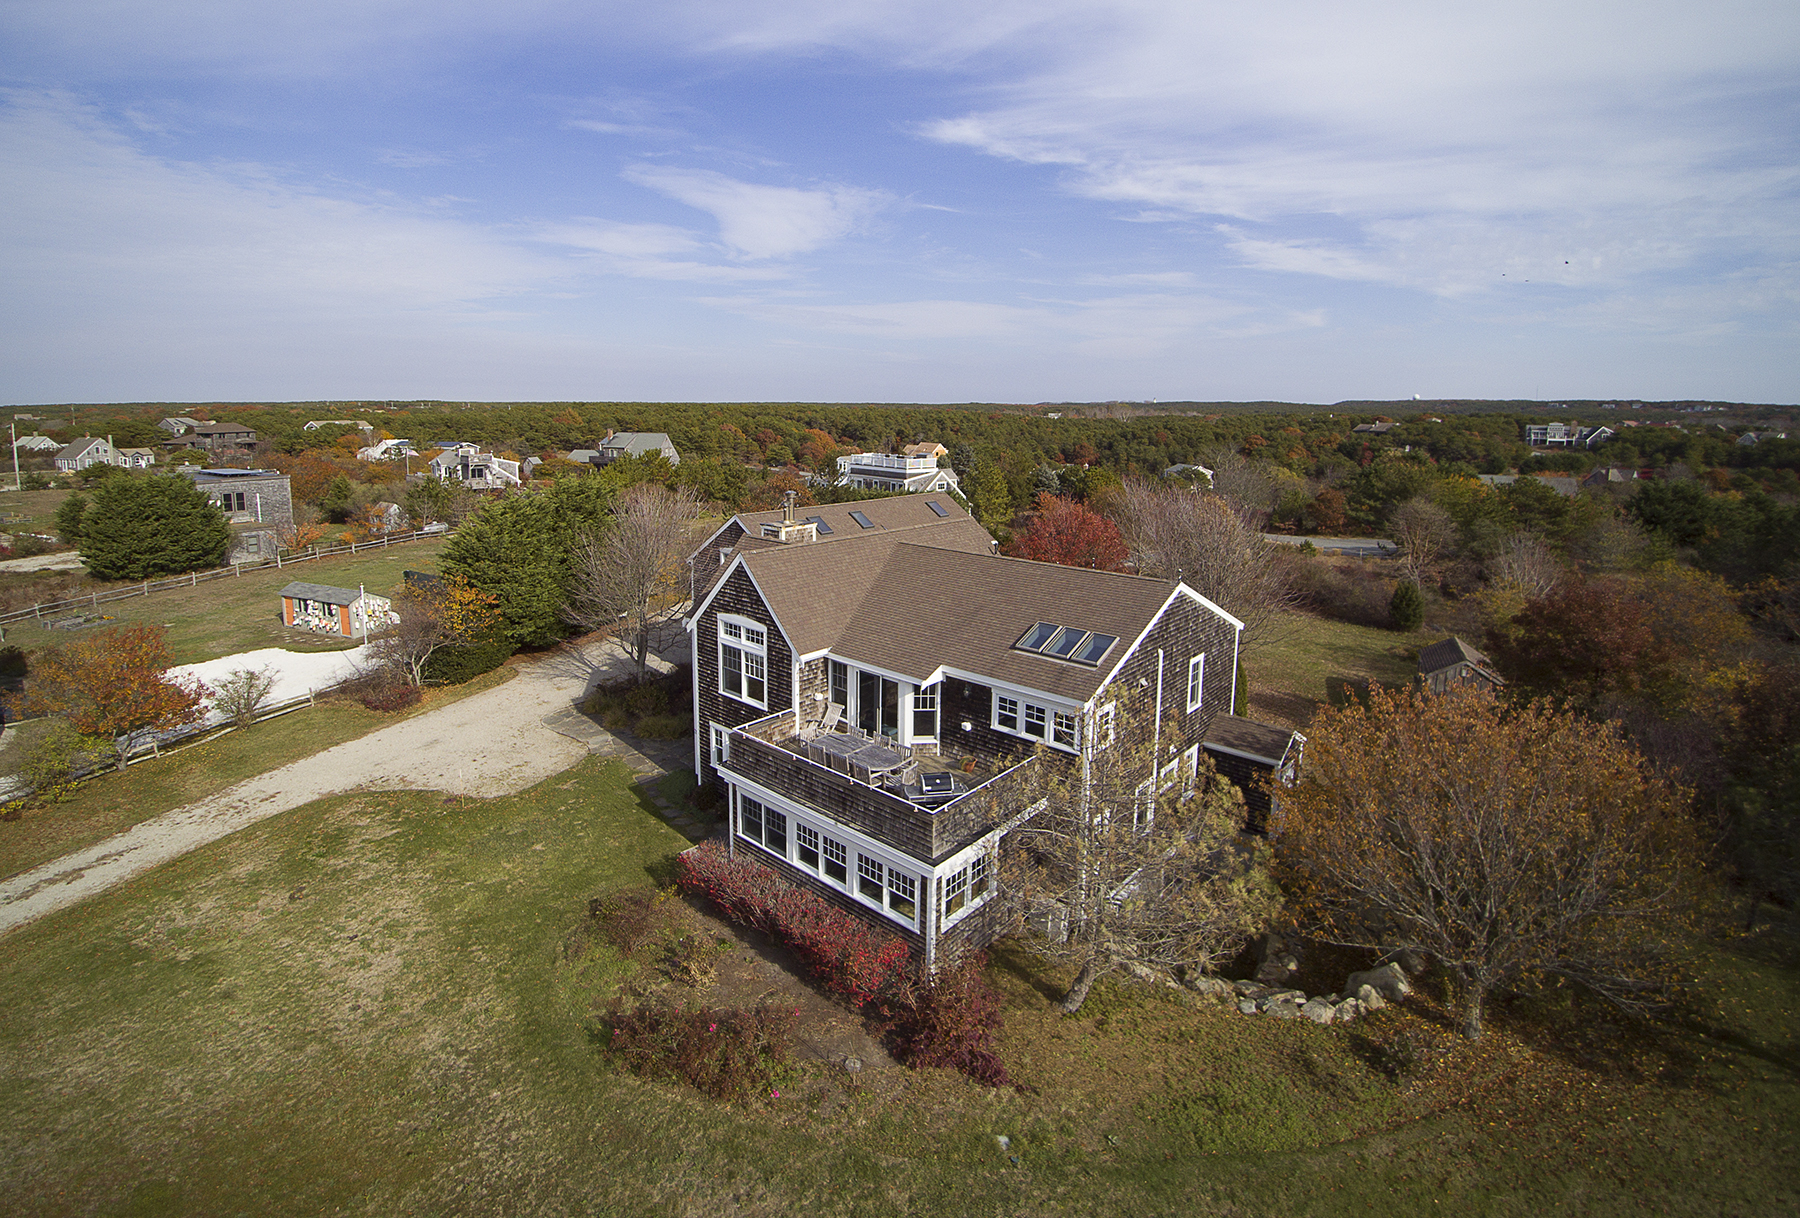 Single Family Home for Sale at 22 Bay View Road, Truro, MA Truro, Massachusetts, 02666 United States